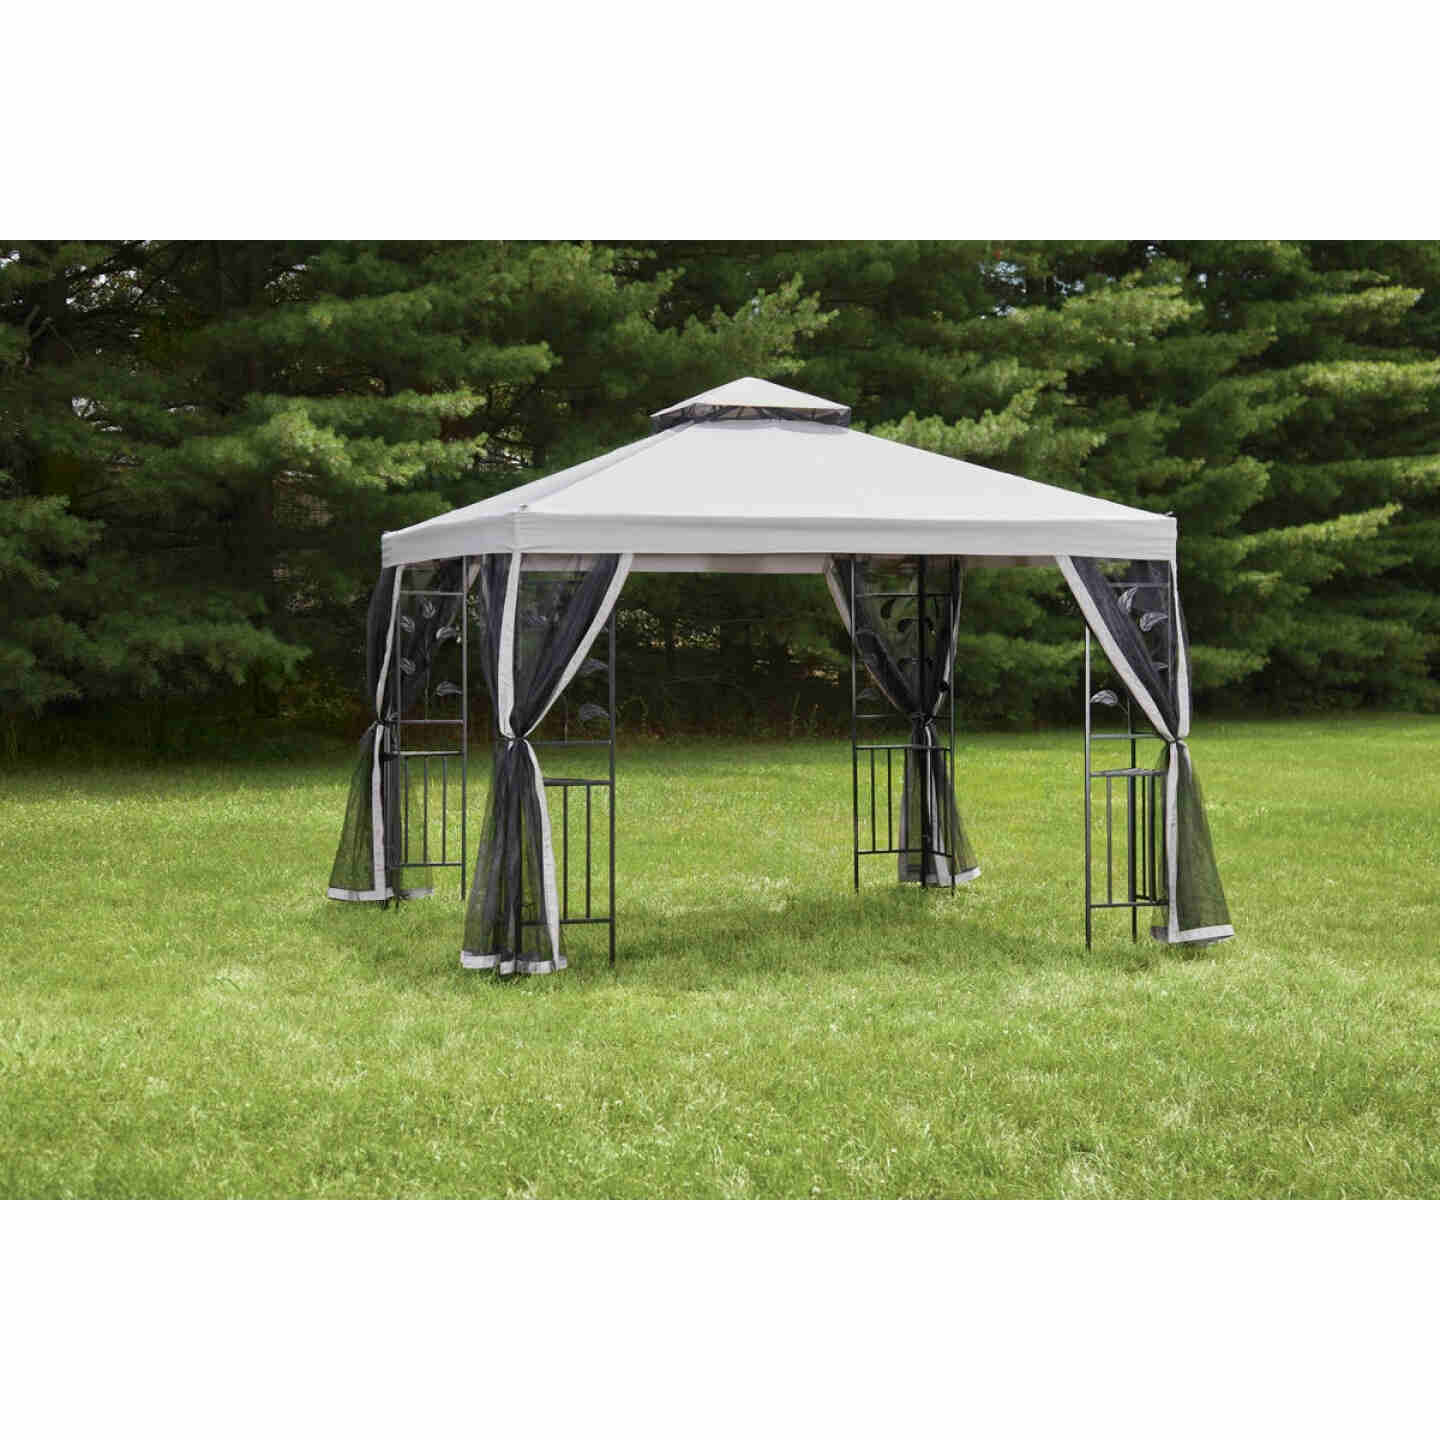 Outdoor Expressions 10 Ft. x 10 Ft. Gray & Black Steel Gazebo with Sides Image 4